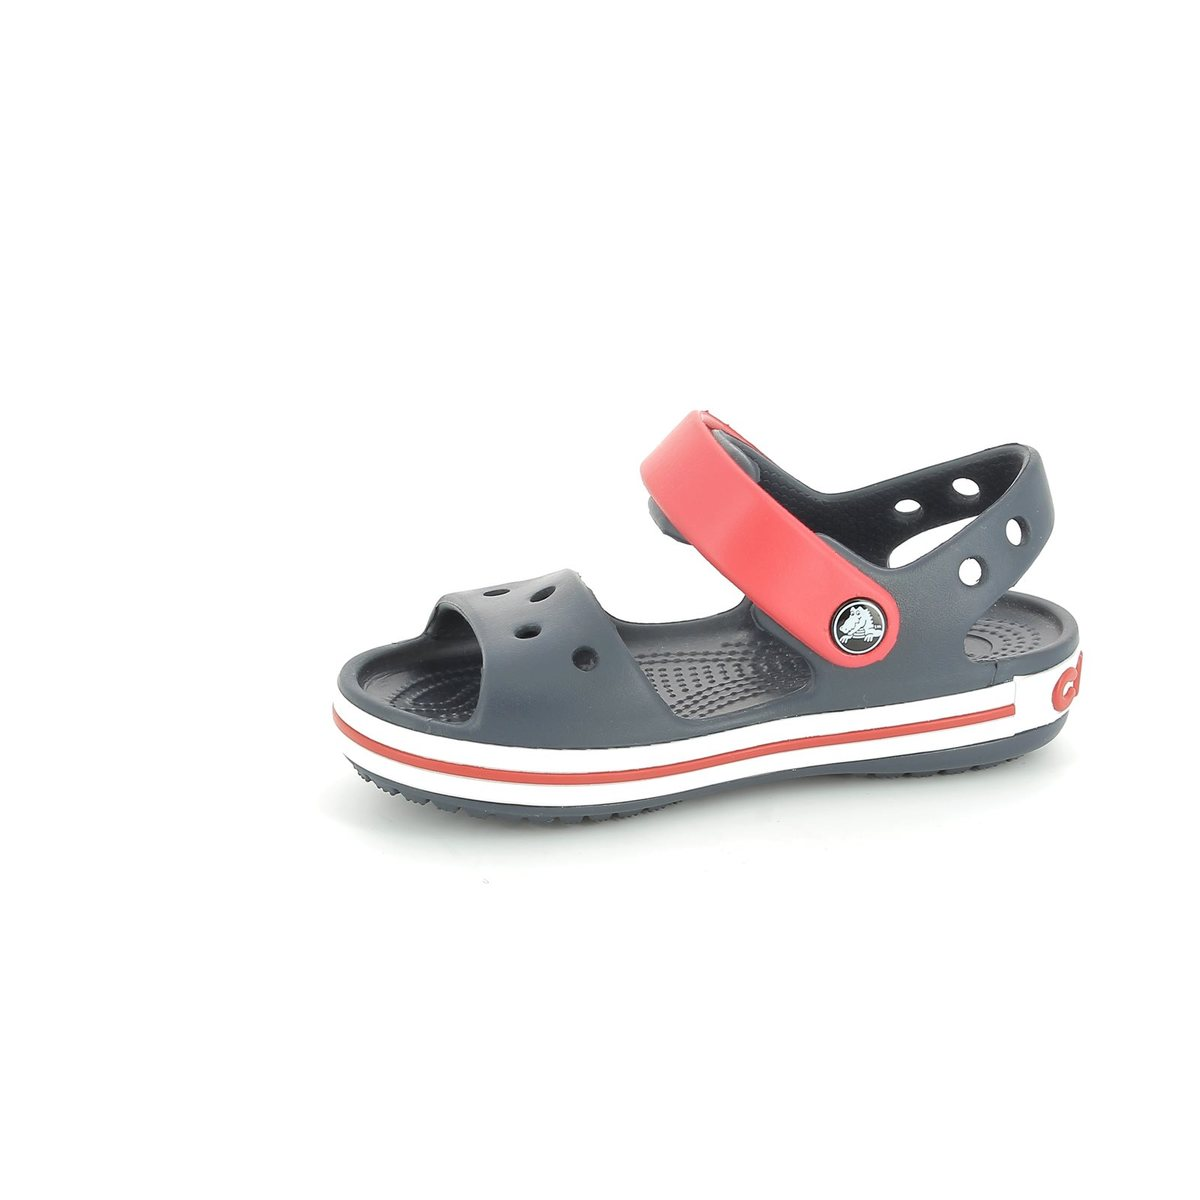 8212e7de017a Crocs Sandals - Navy multi - 12856 485 CROCBAND KIDS